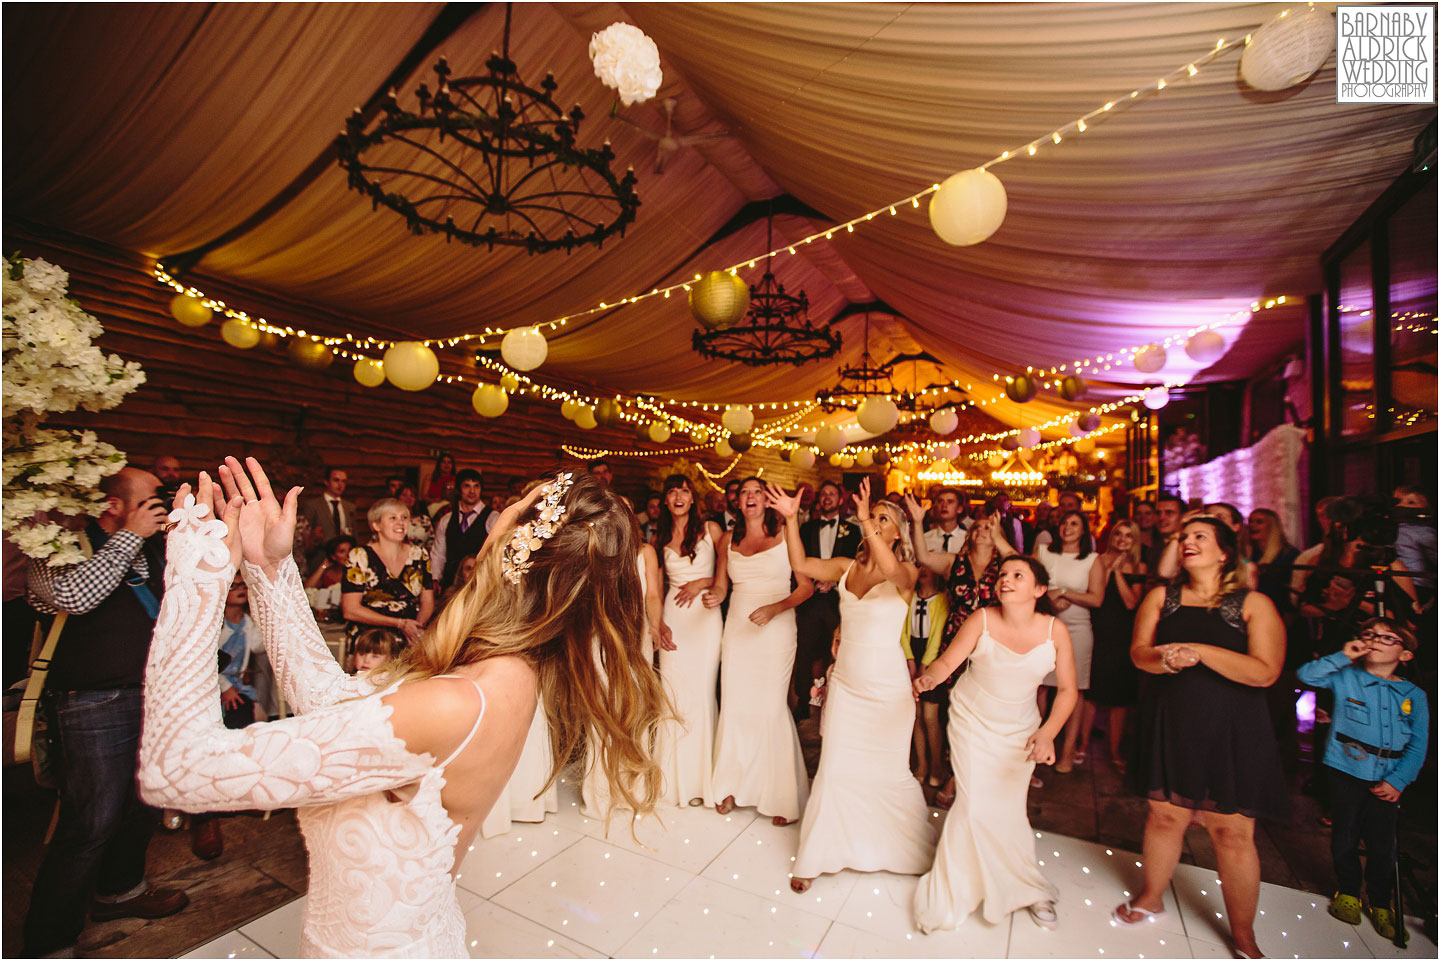 Throwing the bouquet at Hornington Manor, Wedding band at Hornington Manor, Hornington Manor Wedding Photography, Hornington Manor Wedding Photographer, Yorkshire Wedding, Yorkshire Wedding Photographer, York Luxury Barn Wedding Venue, Yorkshire farmhouse Wedding Barn